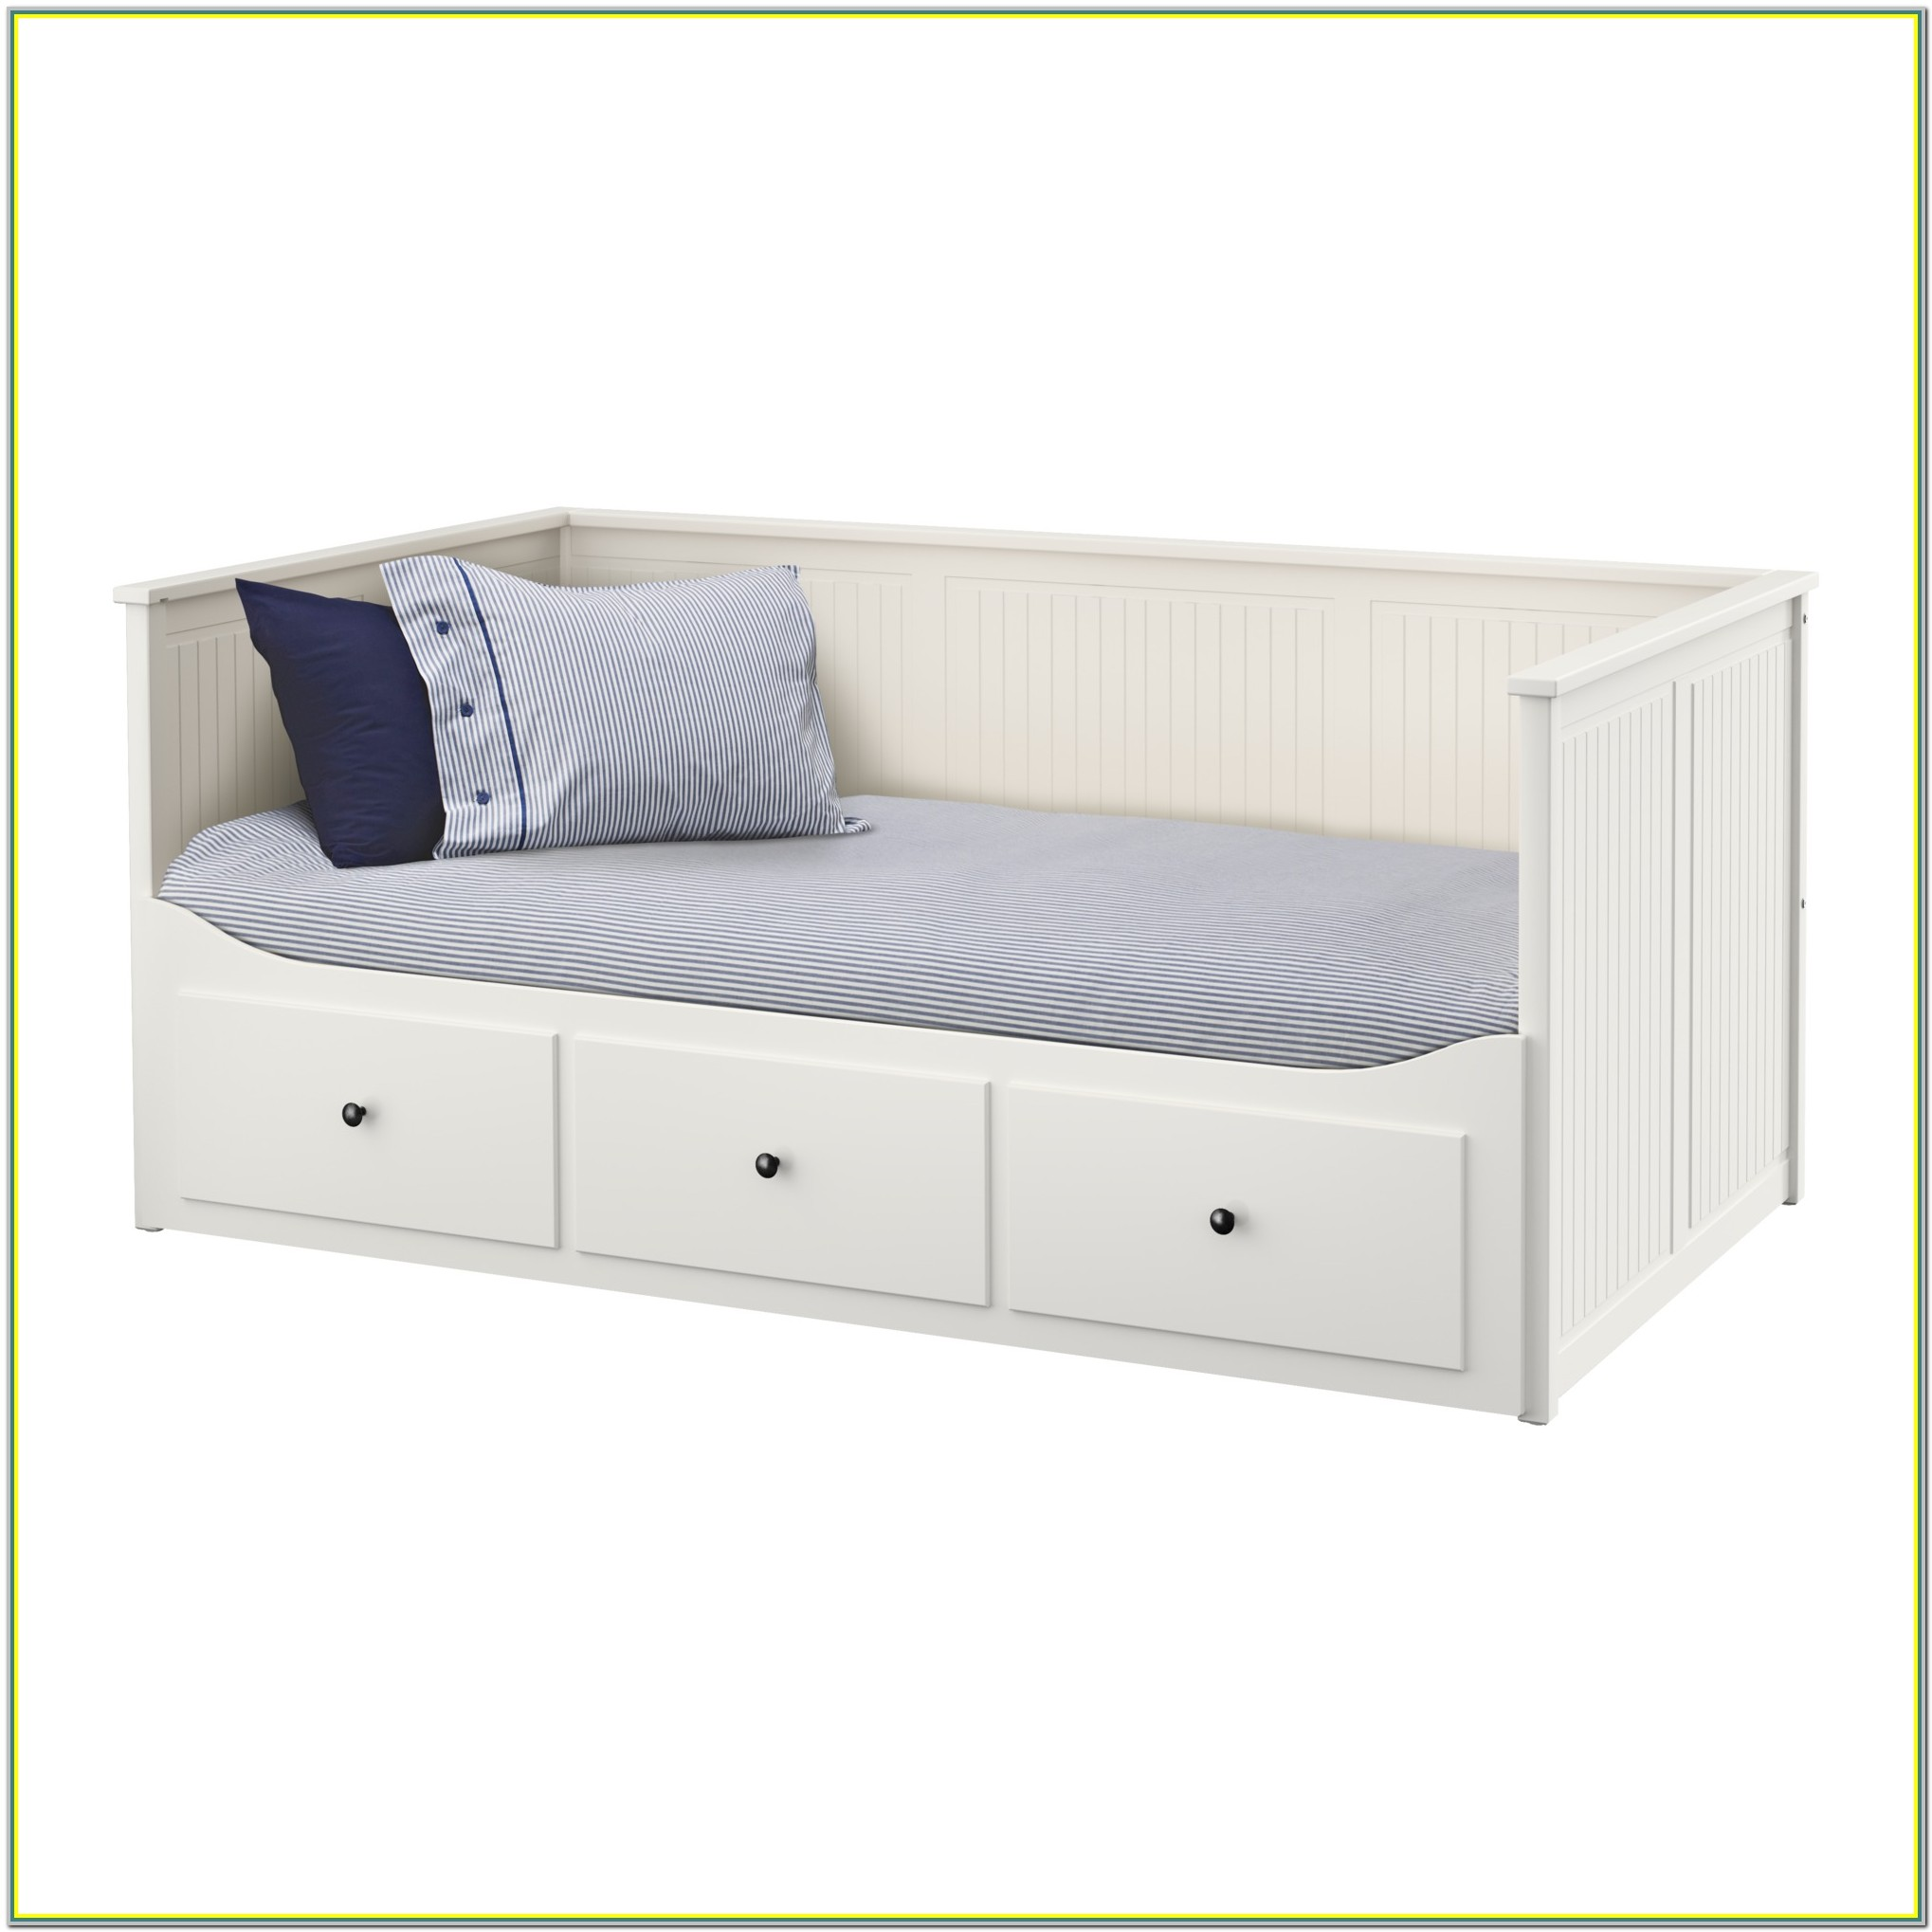 Twin Mattress For Bunk Bed Ikea